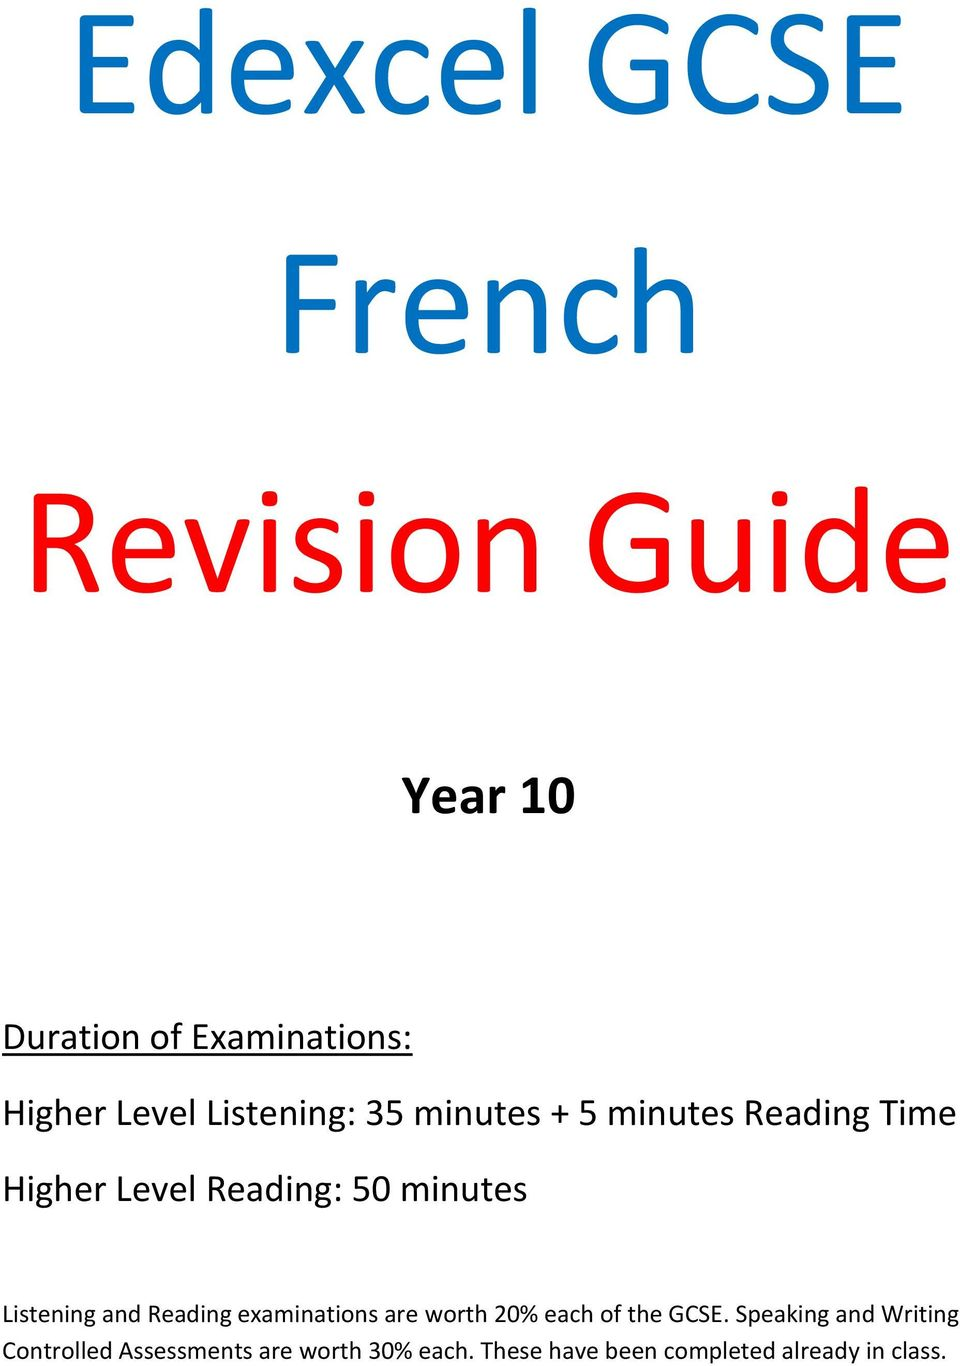 Listening and Reading examinations are worth 20% each of the GCSE.